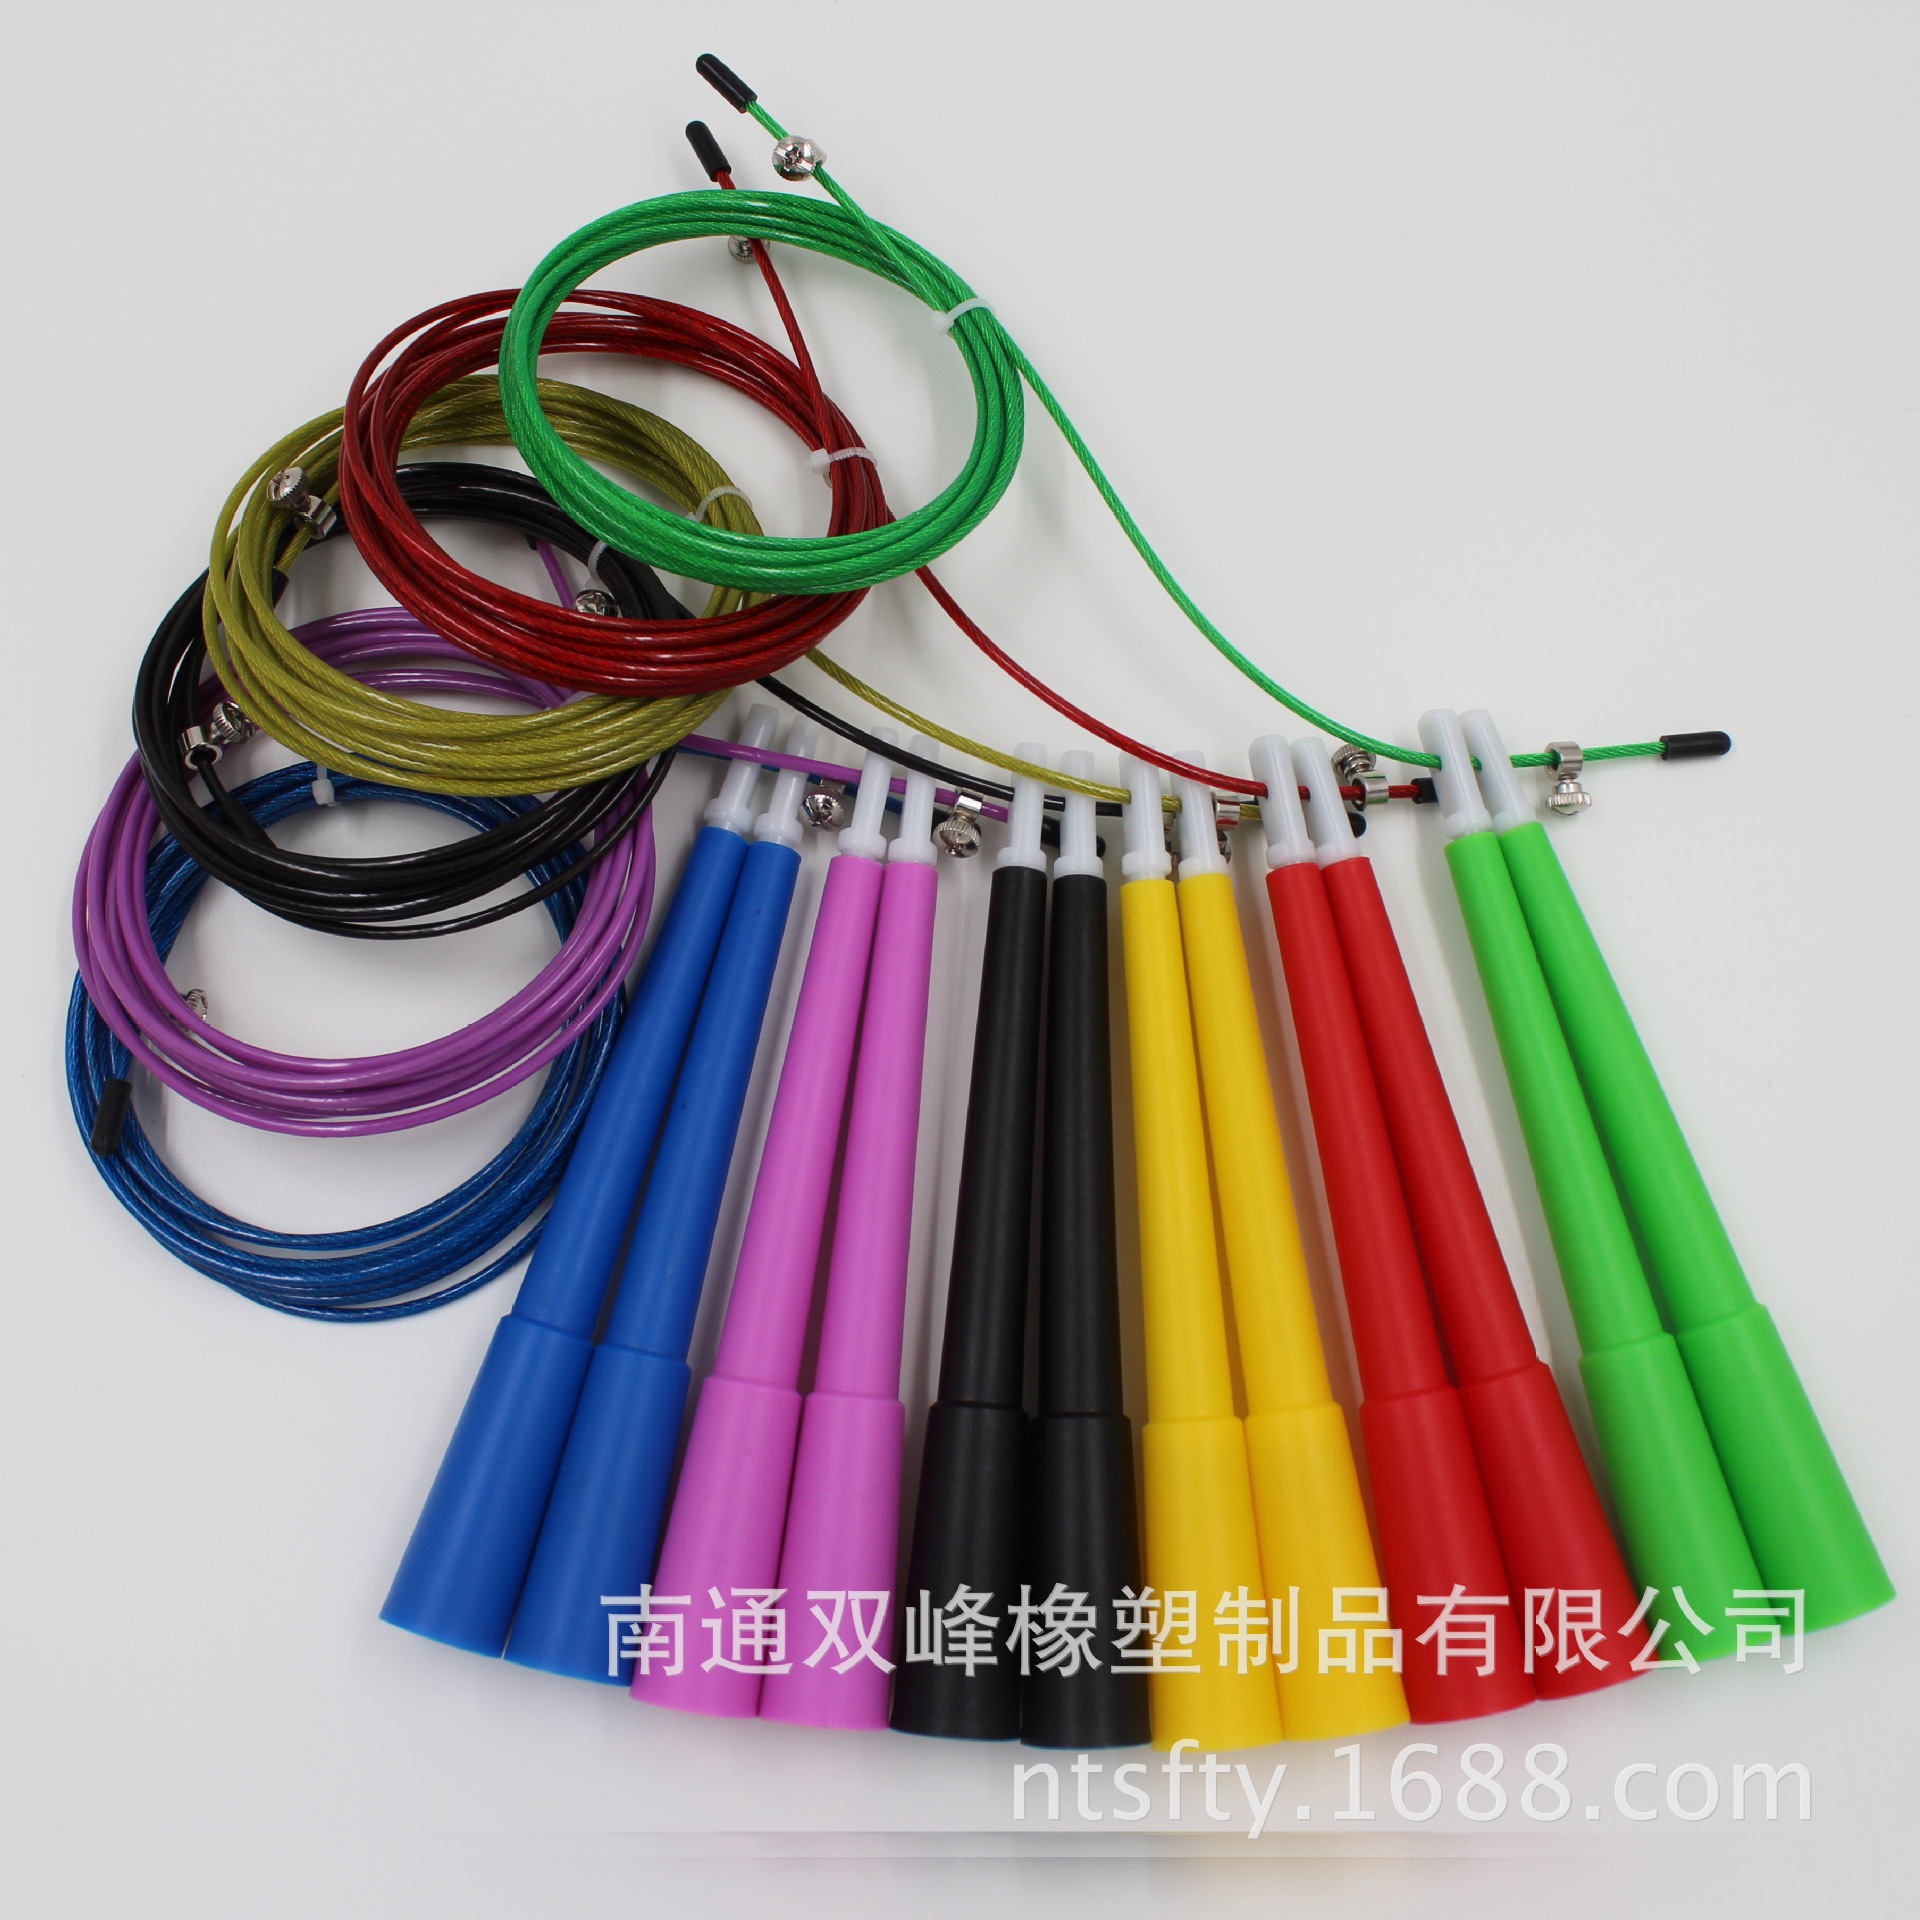 Factory Wholesale Lengthen Handle Steel Wire Jump Rope   National Higher Education Entrance Examination Foreign Trade Rapid Jump